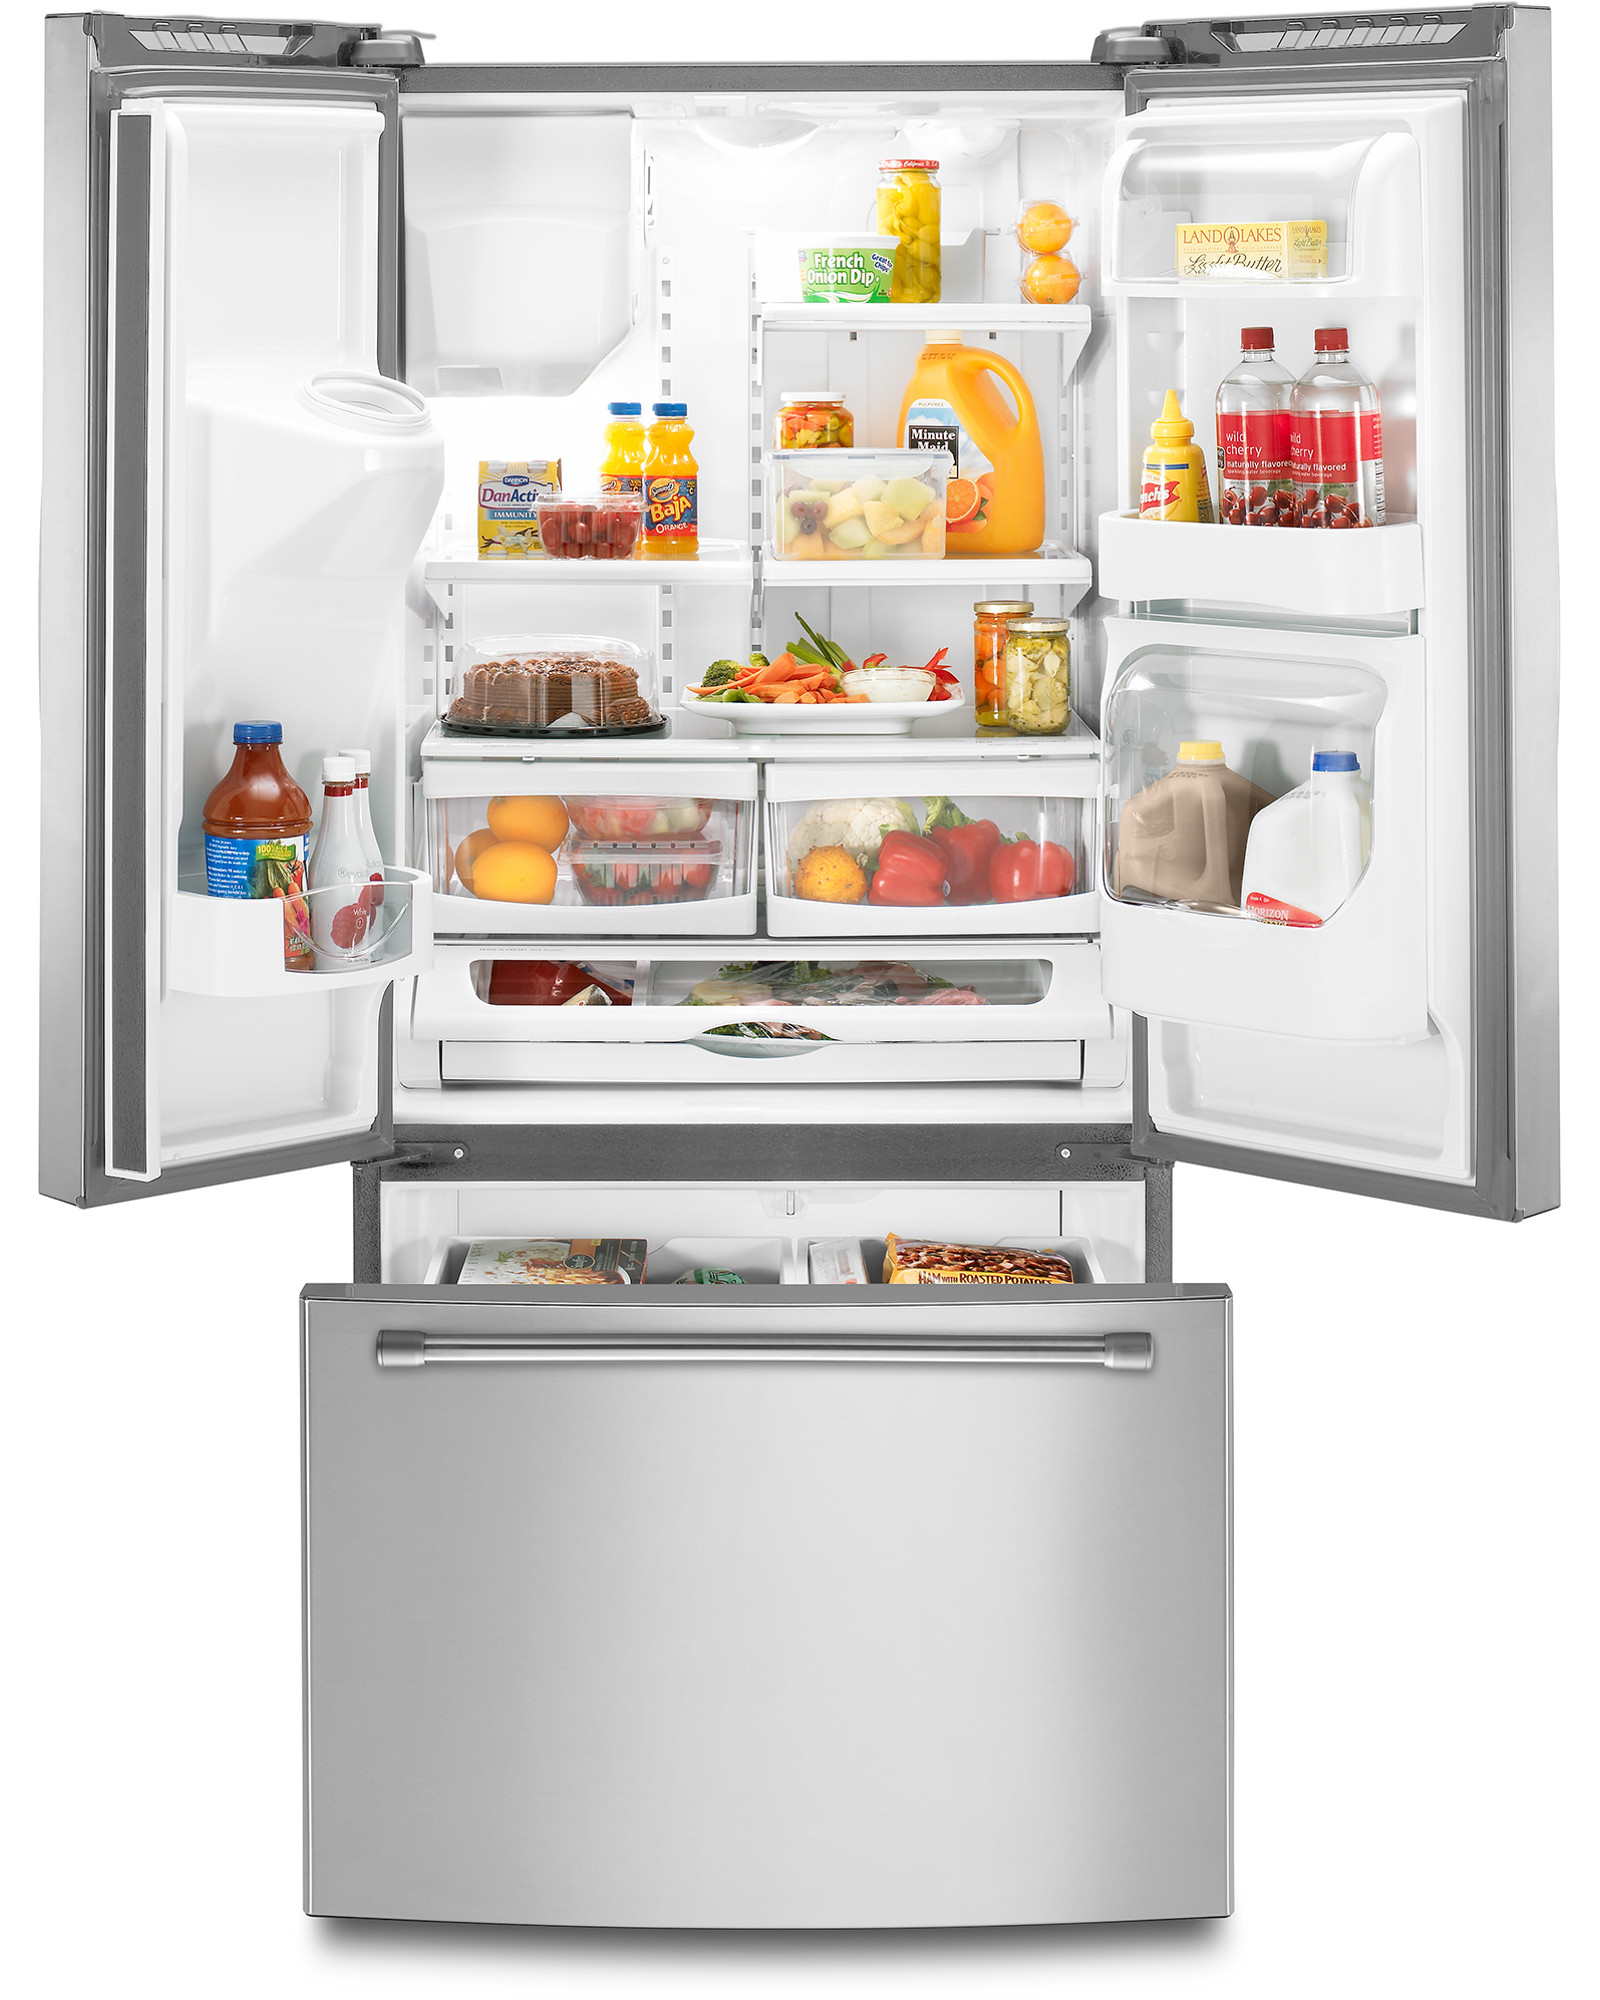 Maytag MFI2269DRM 22 cu. ft. French Door Refrigerator w/ Wide-N-Fresh™ Deli Drawer - Stainless Steel